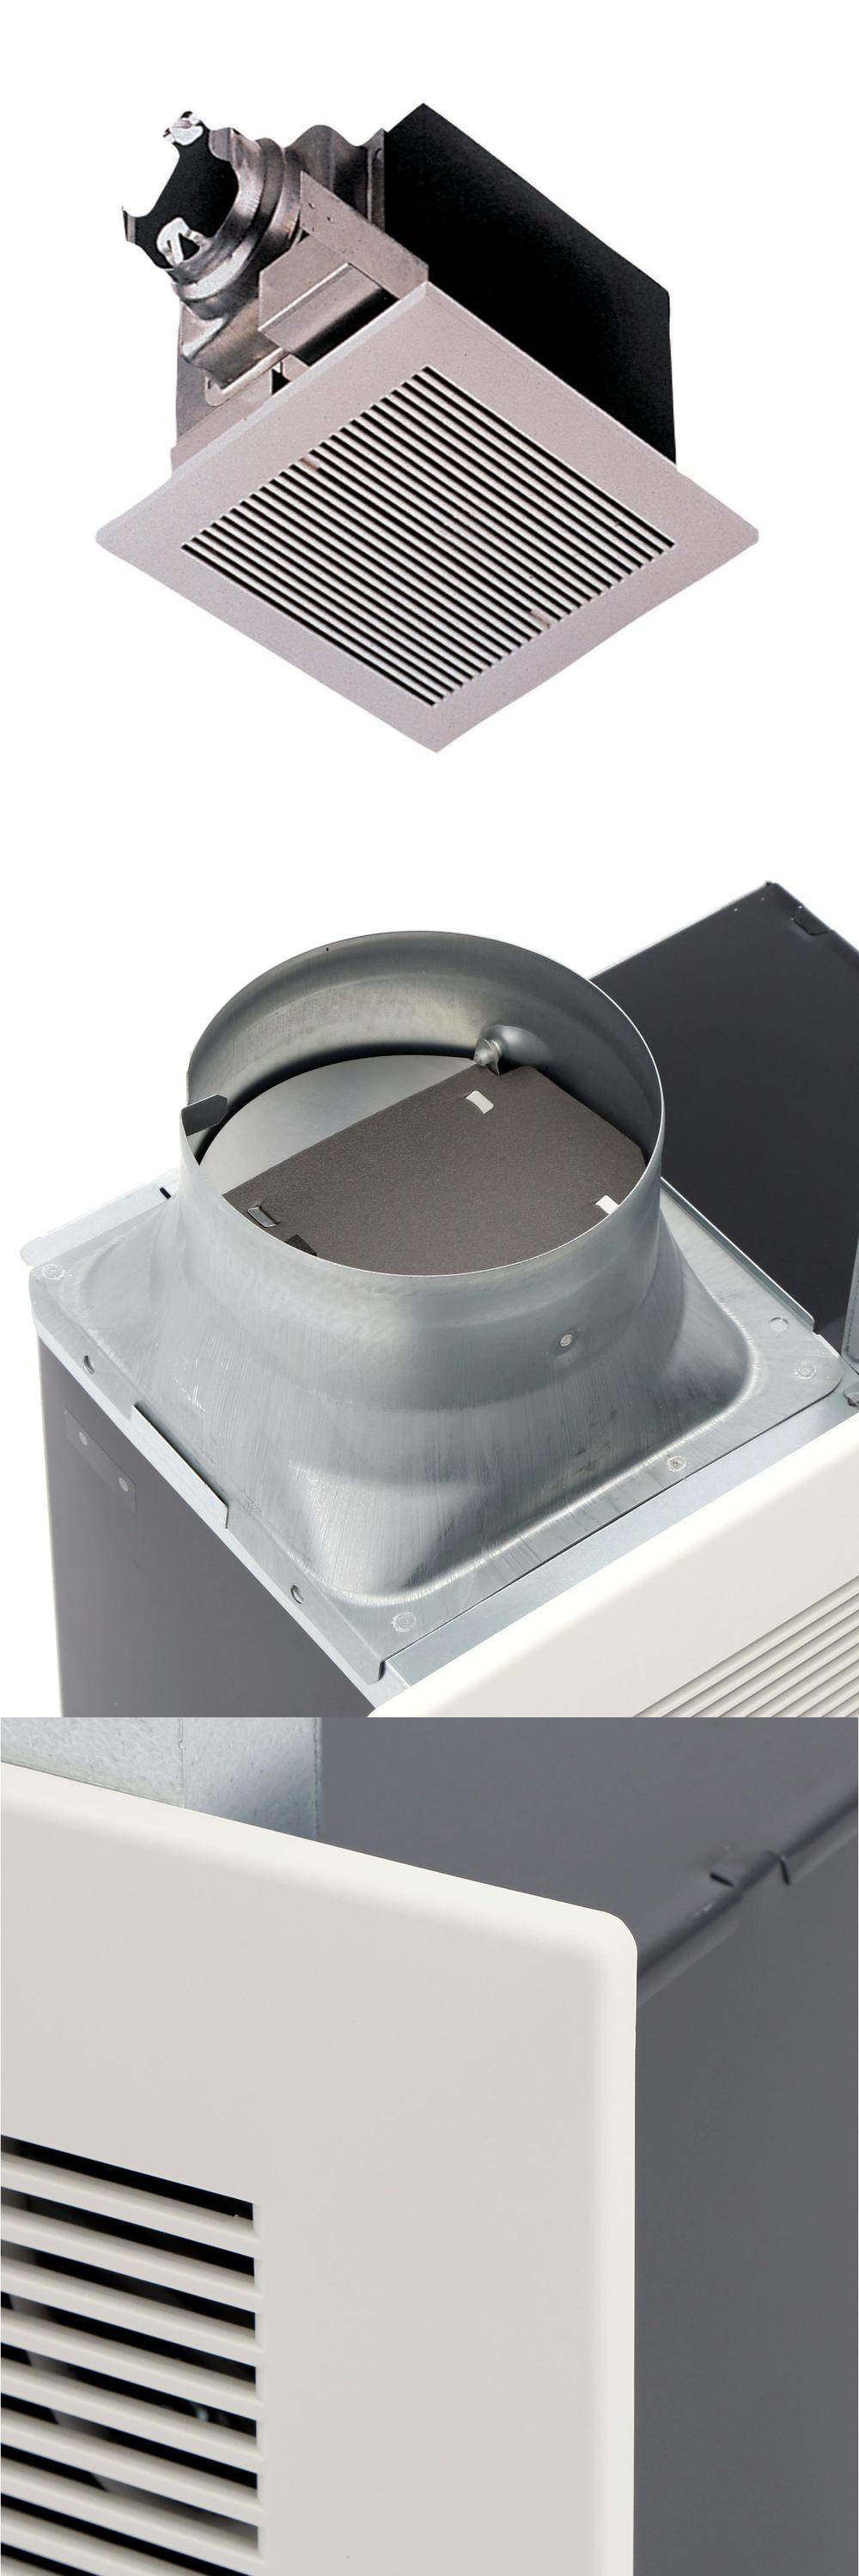 Other Home Heating and Cooling Panasonic Whisperceiling 290